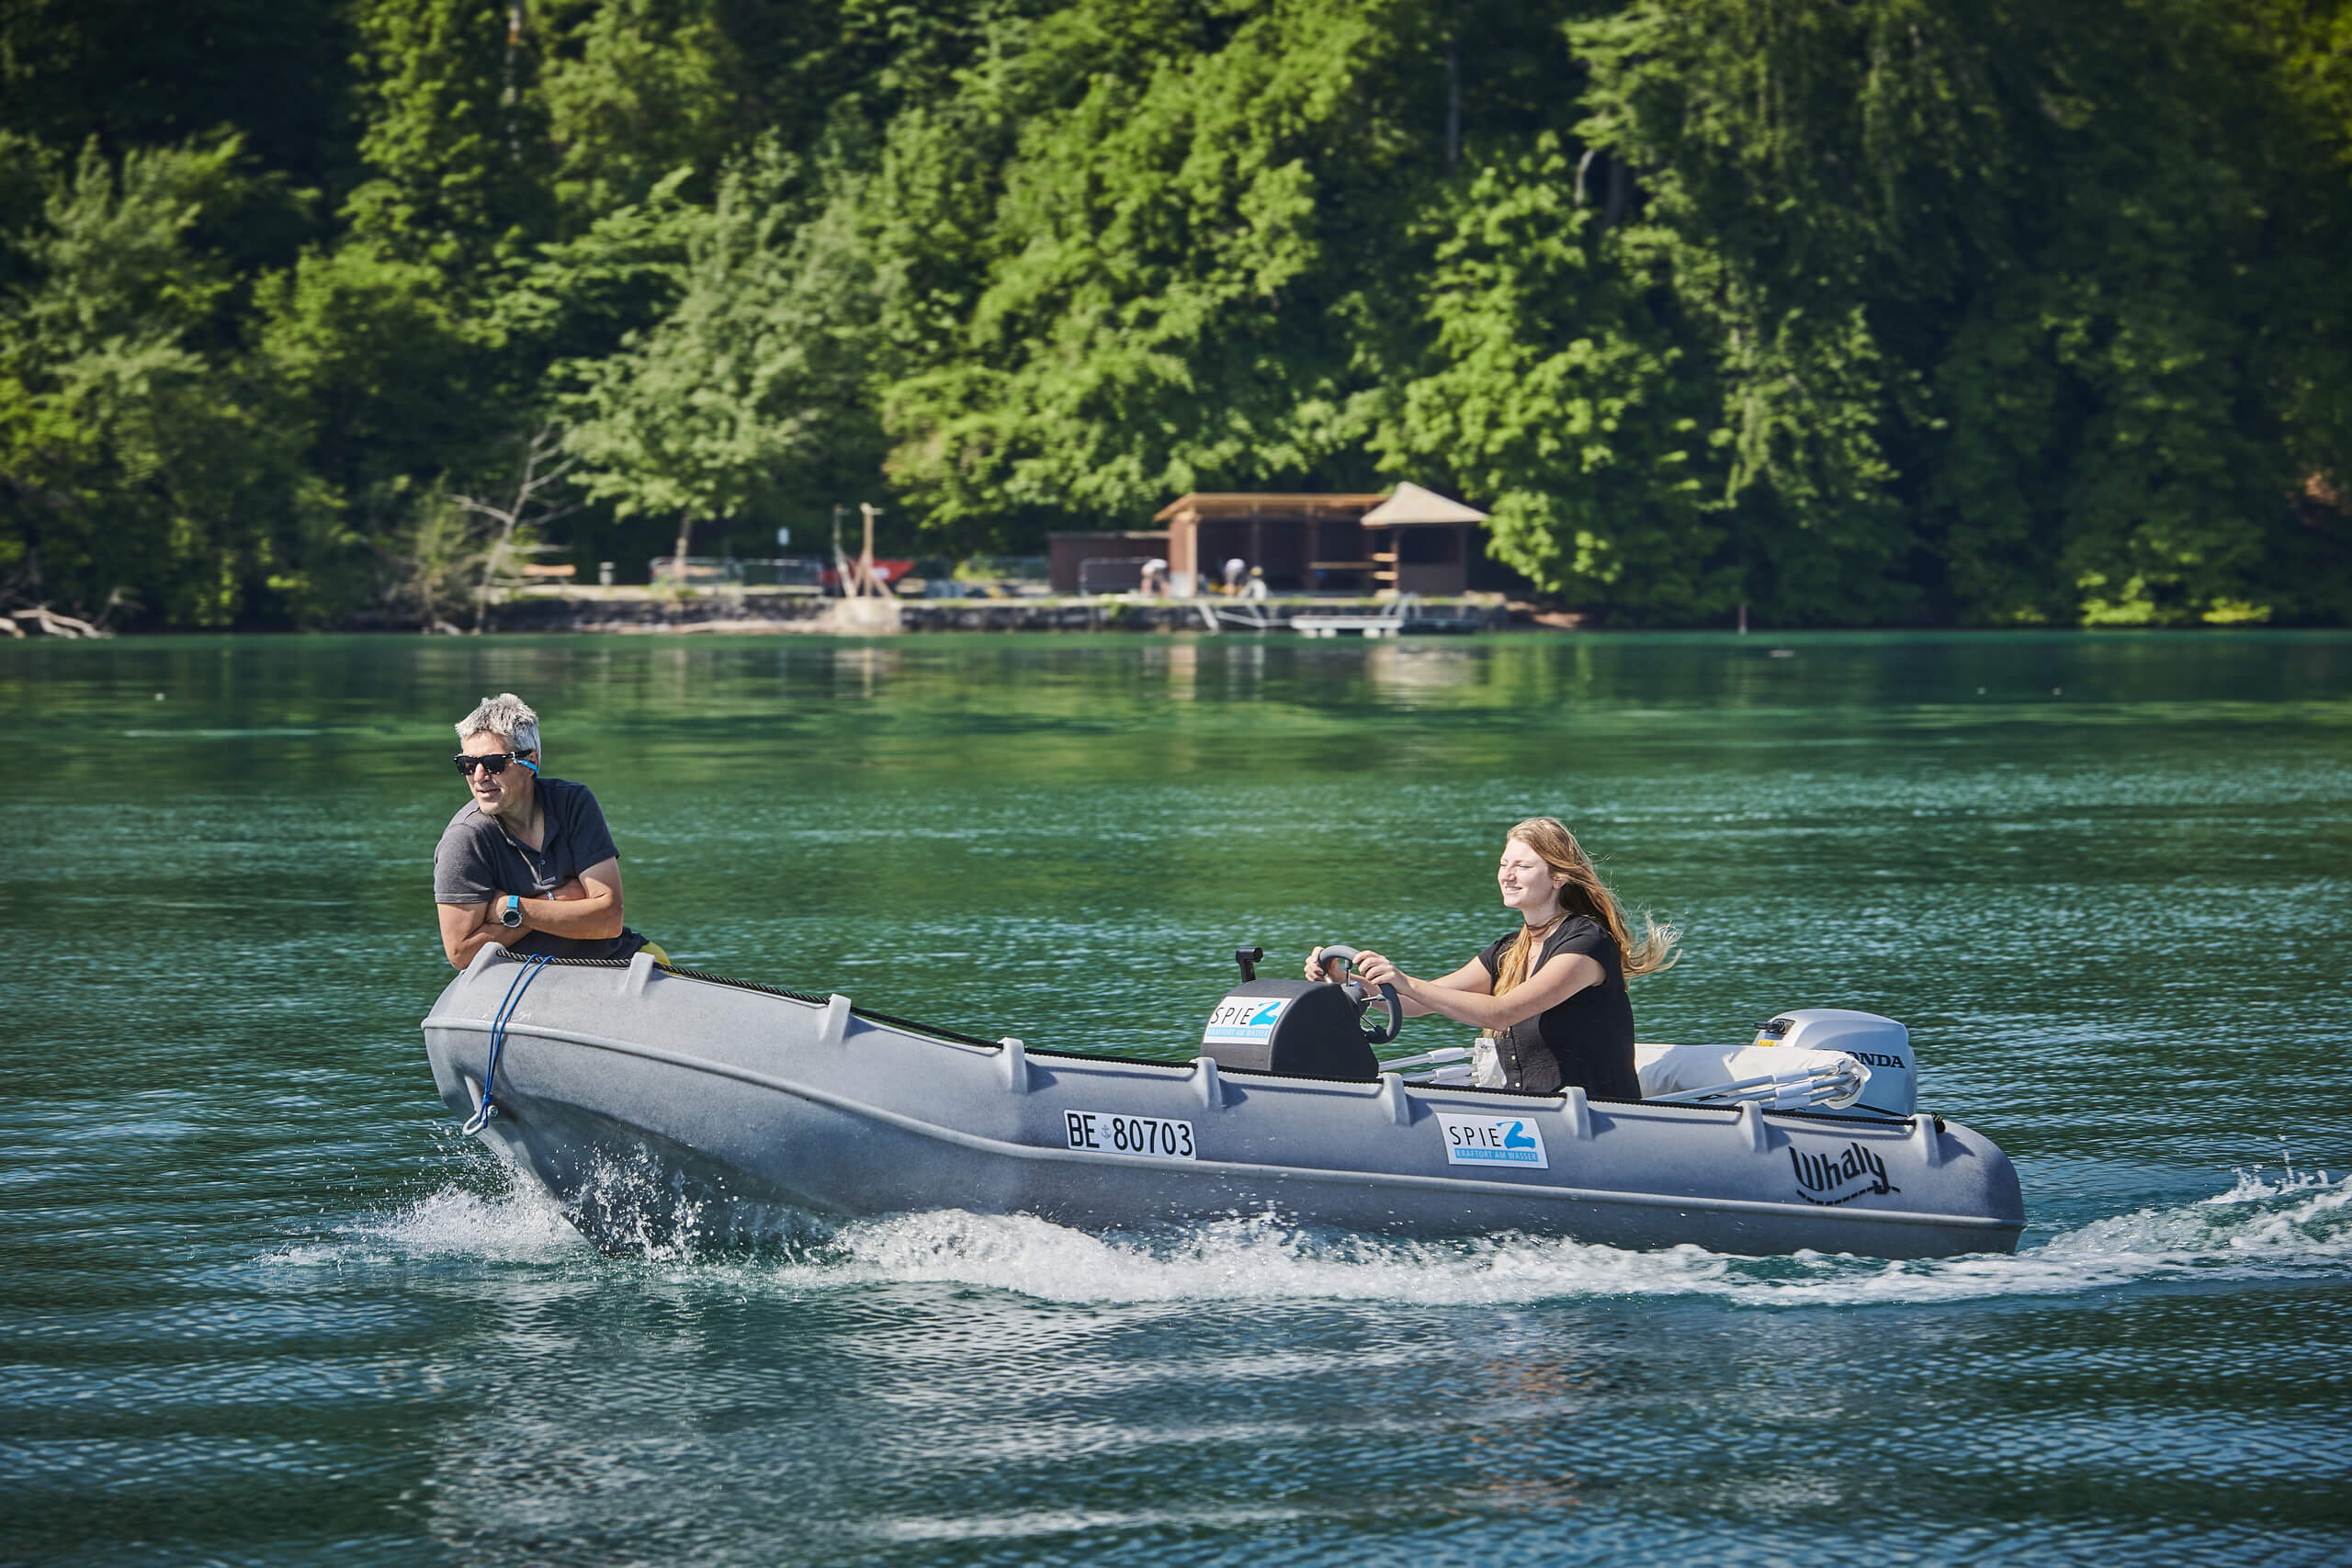 faulensee-thunersee-motorboot-wasser-sommer